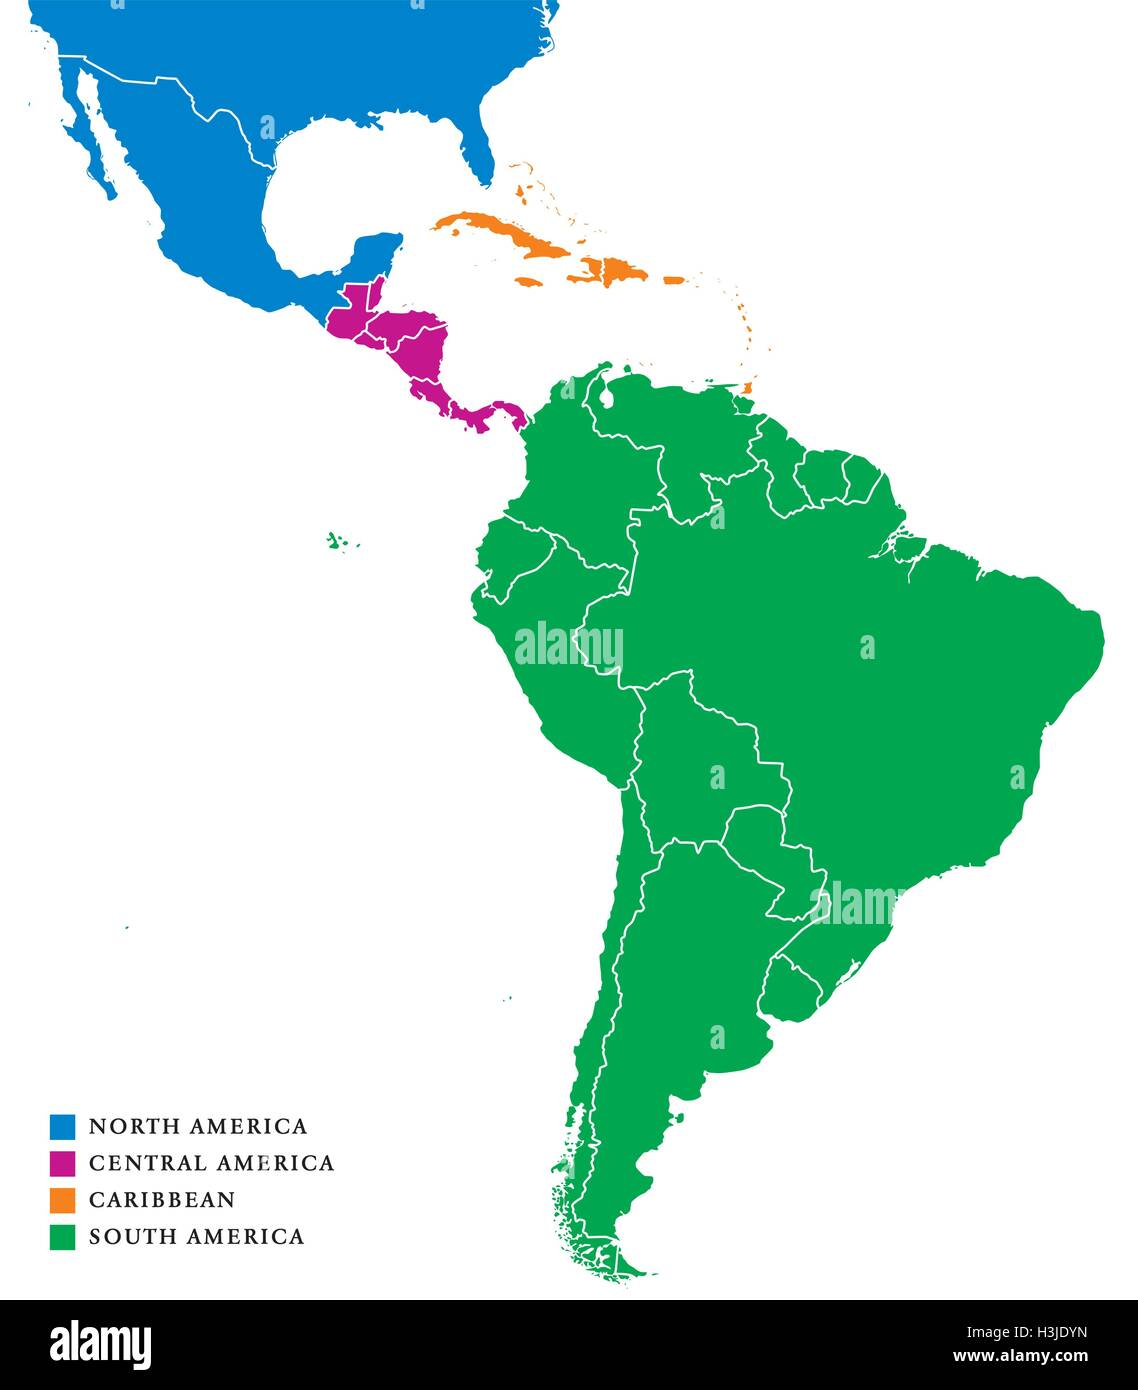 Latin America Subregions Map The Subregions Caribbean North - North and south america map